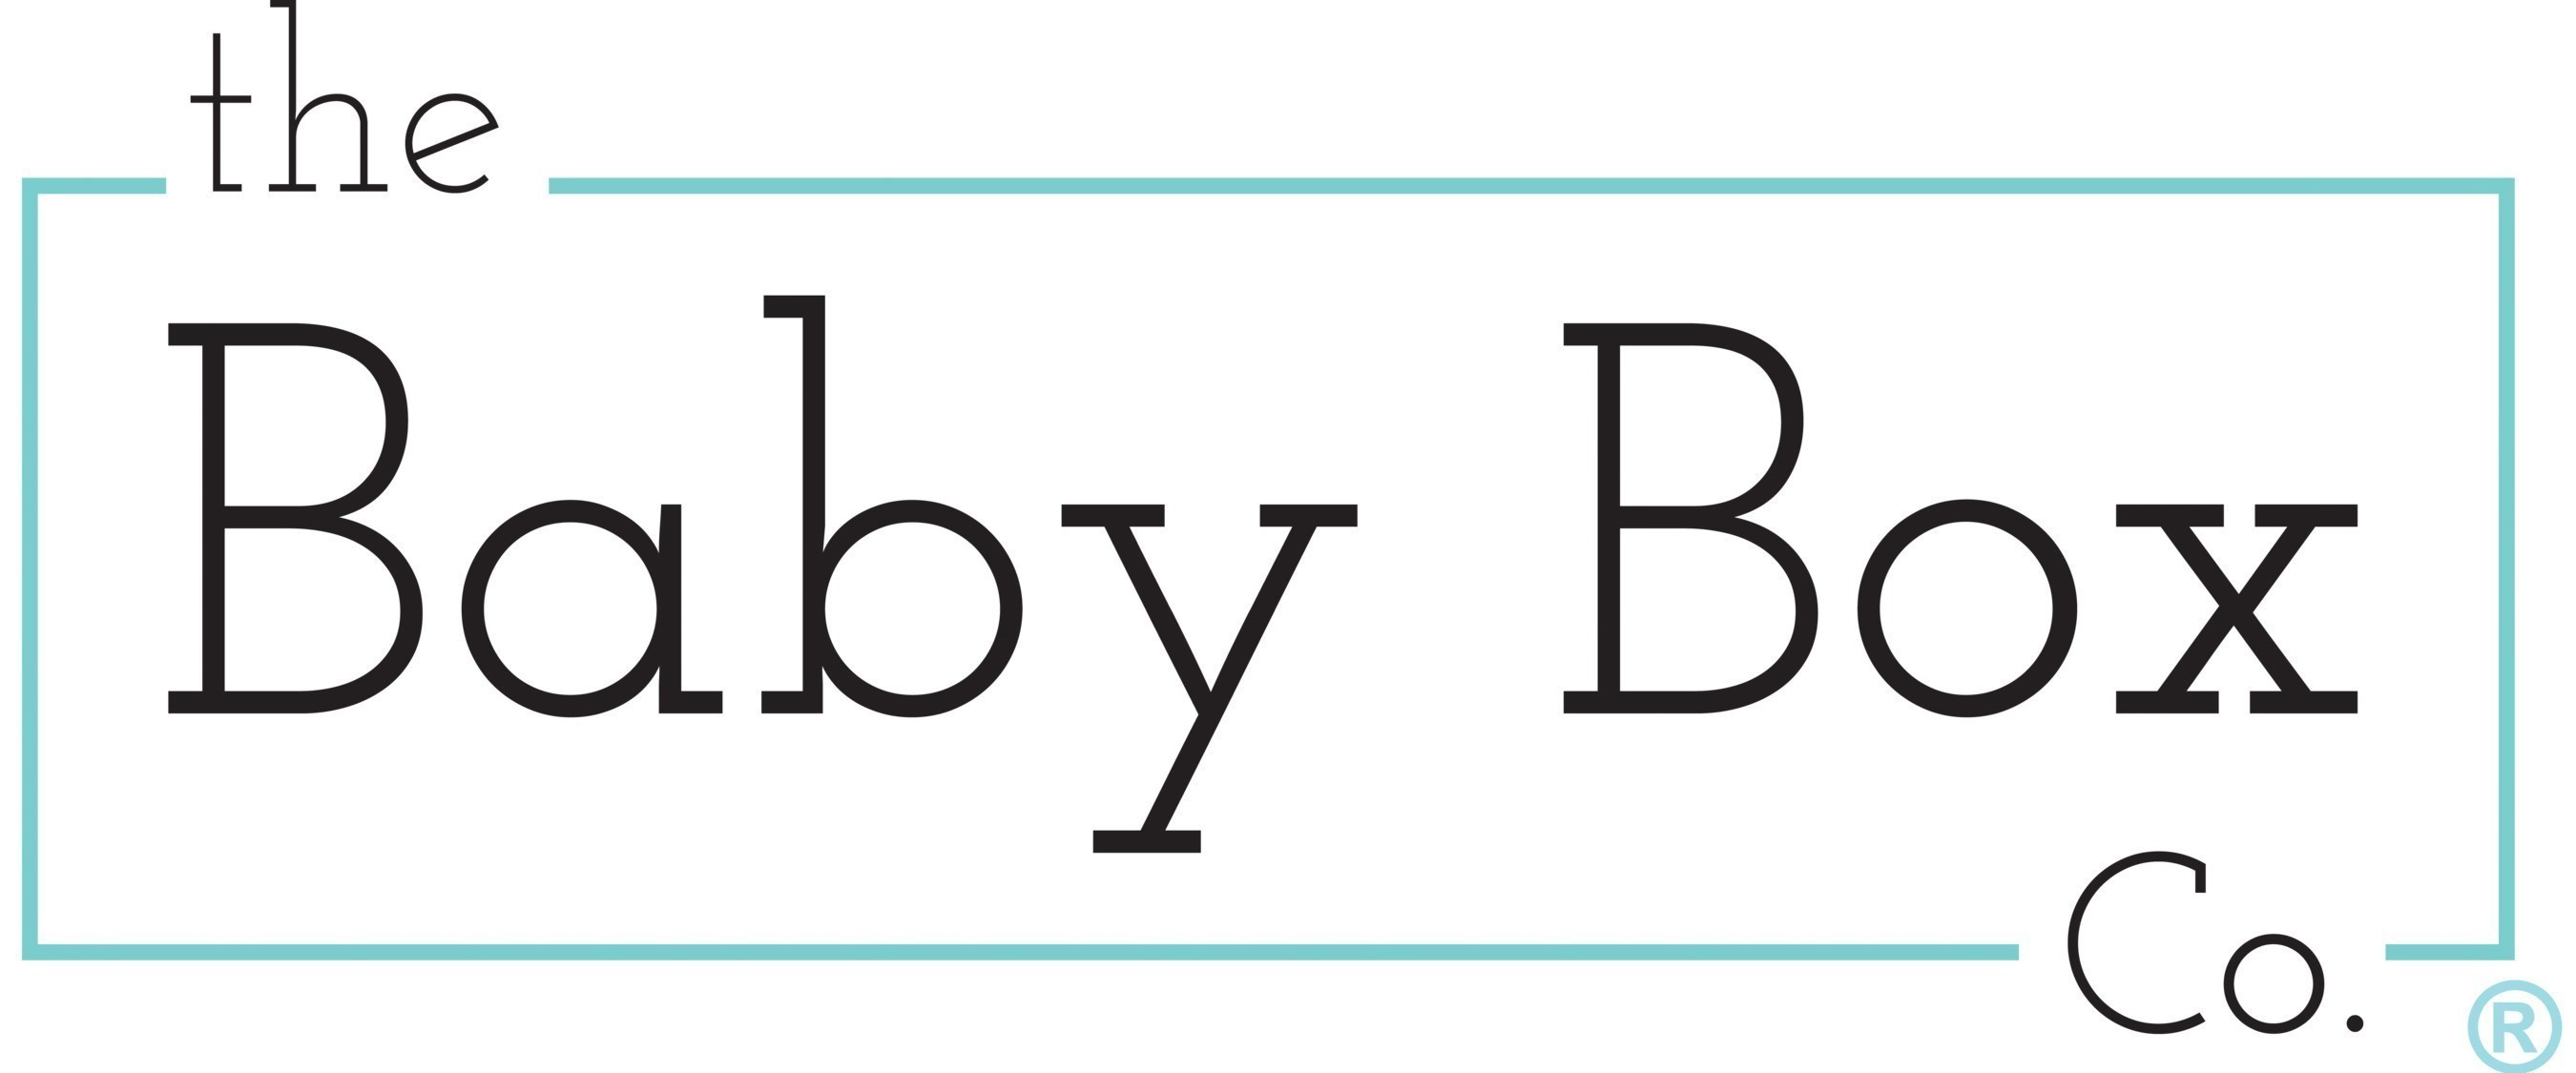 Ontario to become the largest Baby Box program in the world for safe sleep with The Baby Box Co.